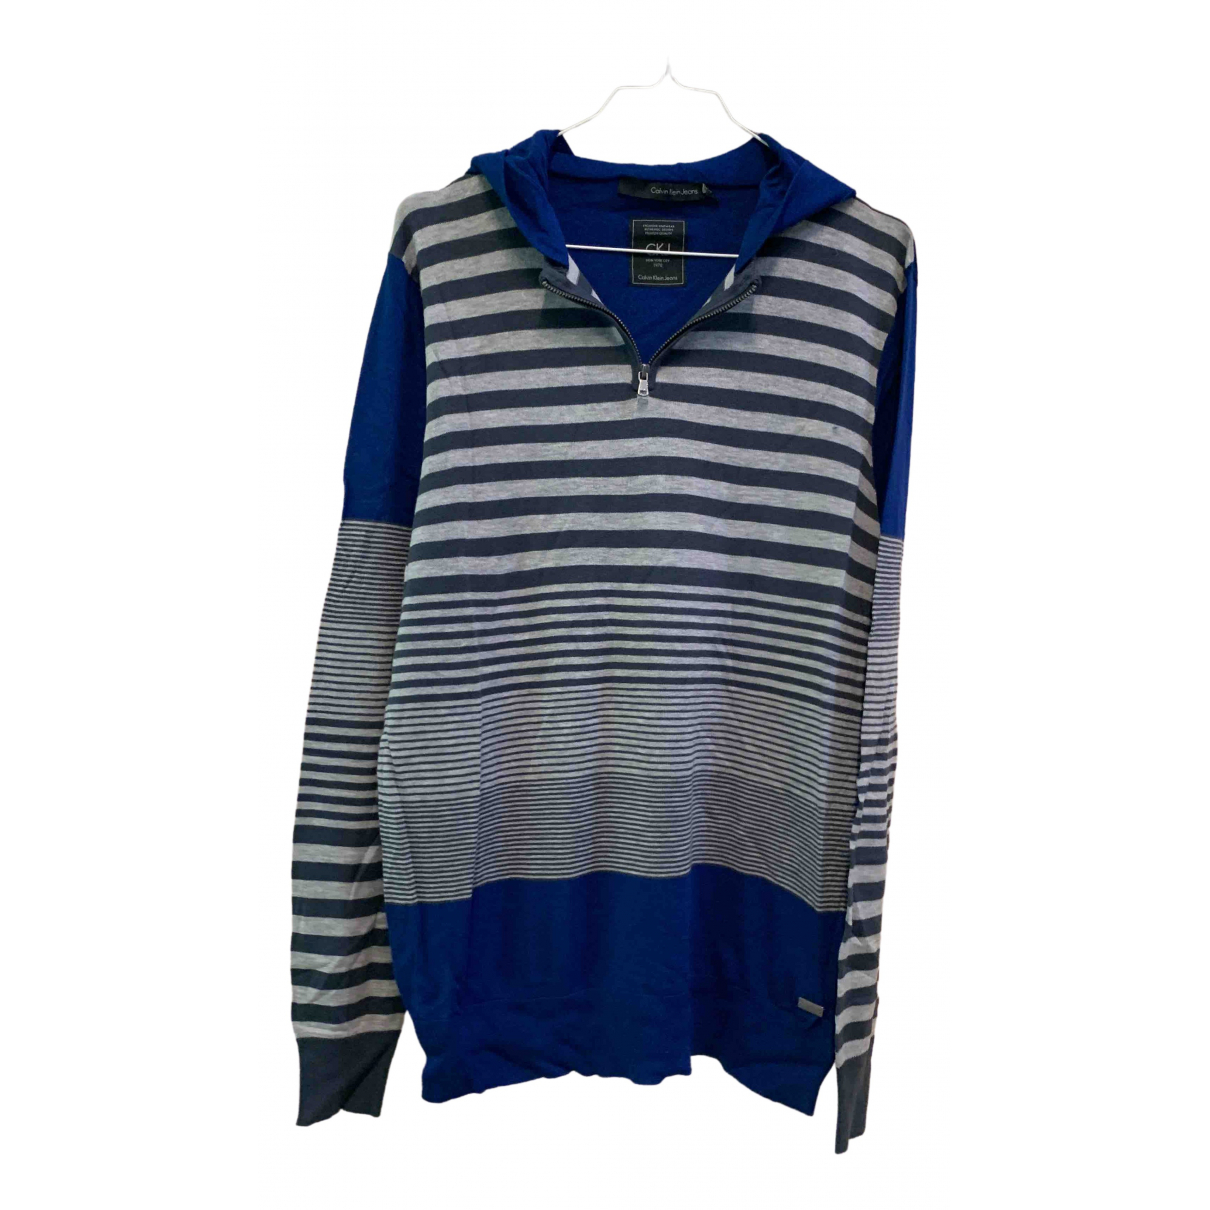 Calvin Klein \N Blue Cotton Knitwear for Kids 20 years - XL UK